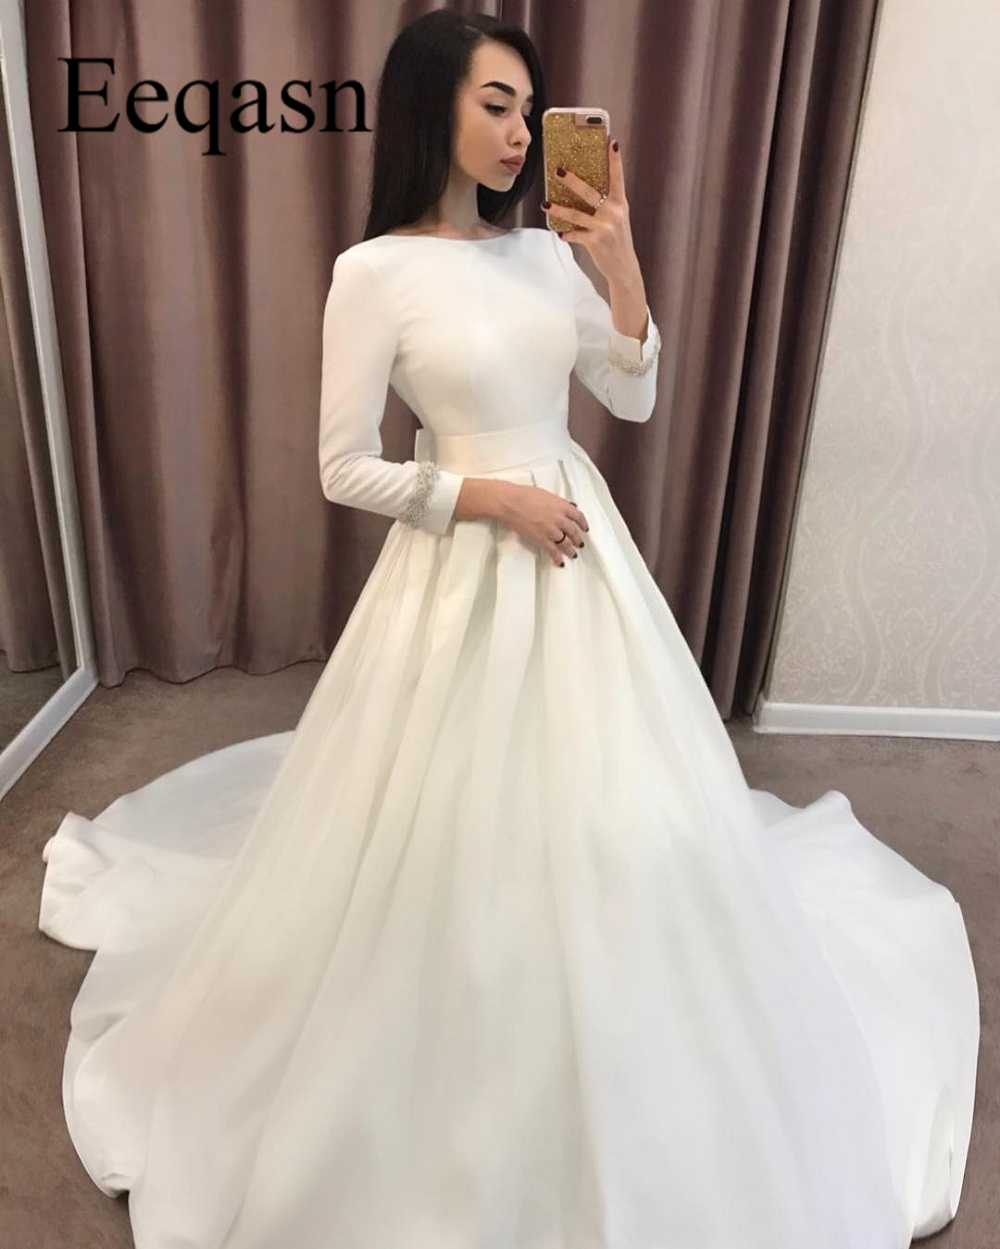 Us 12069 19 Offlong Sleeve 2019 Wedding Dresses A Line Satin Simple Turkey Wedding Gown Bridal Dresses Cheap Mariage Robe De Mariage In Wedding